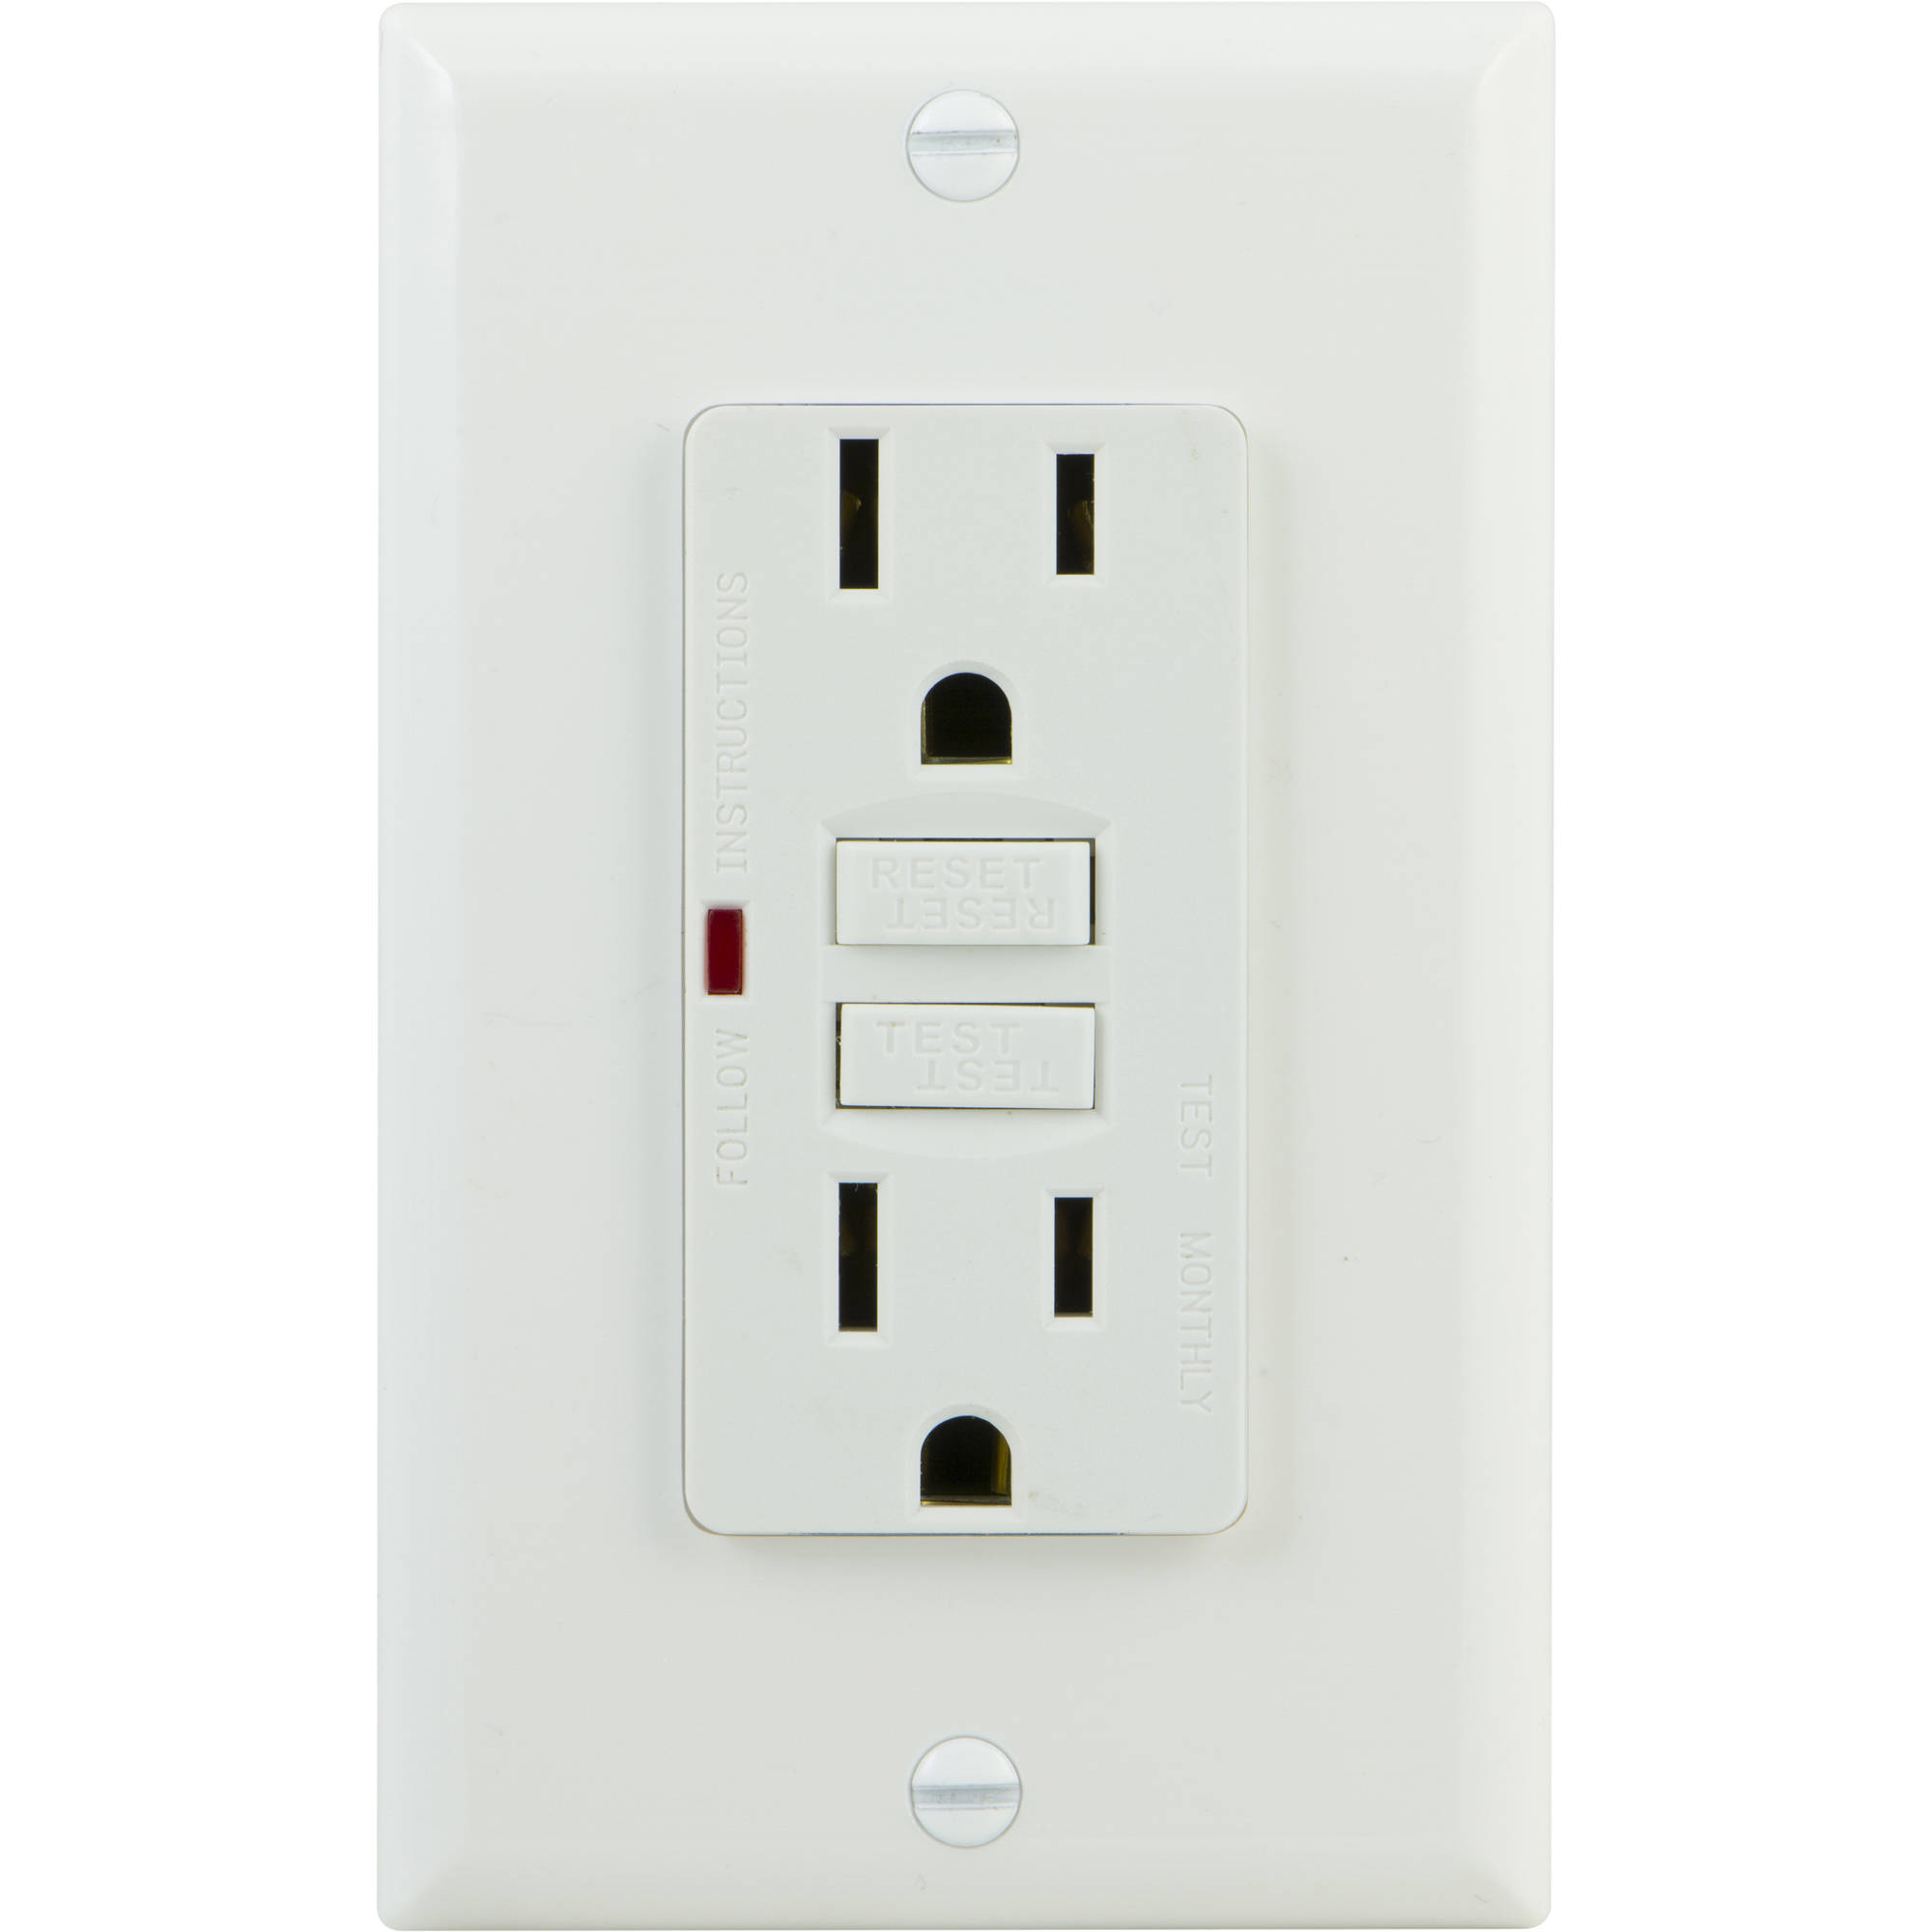 GE 15A Self Test GFCI Outlet, White, 32073 by Jasco Products